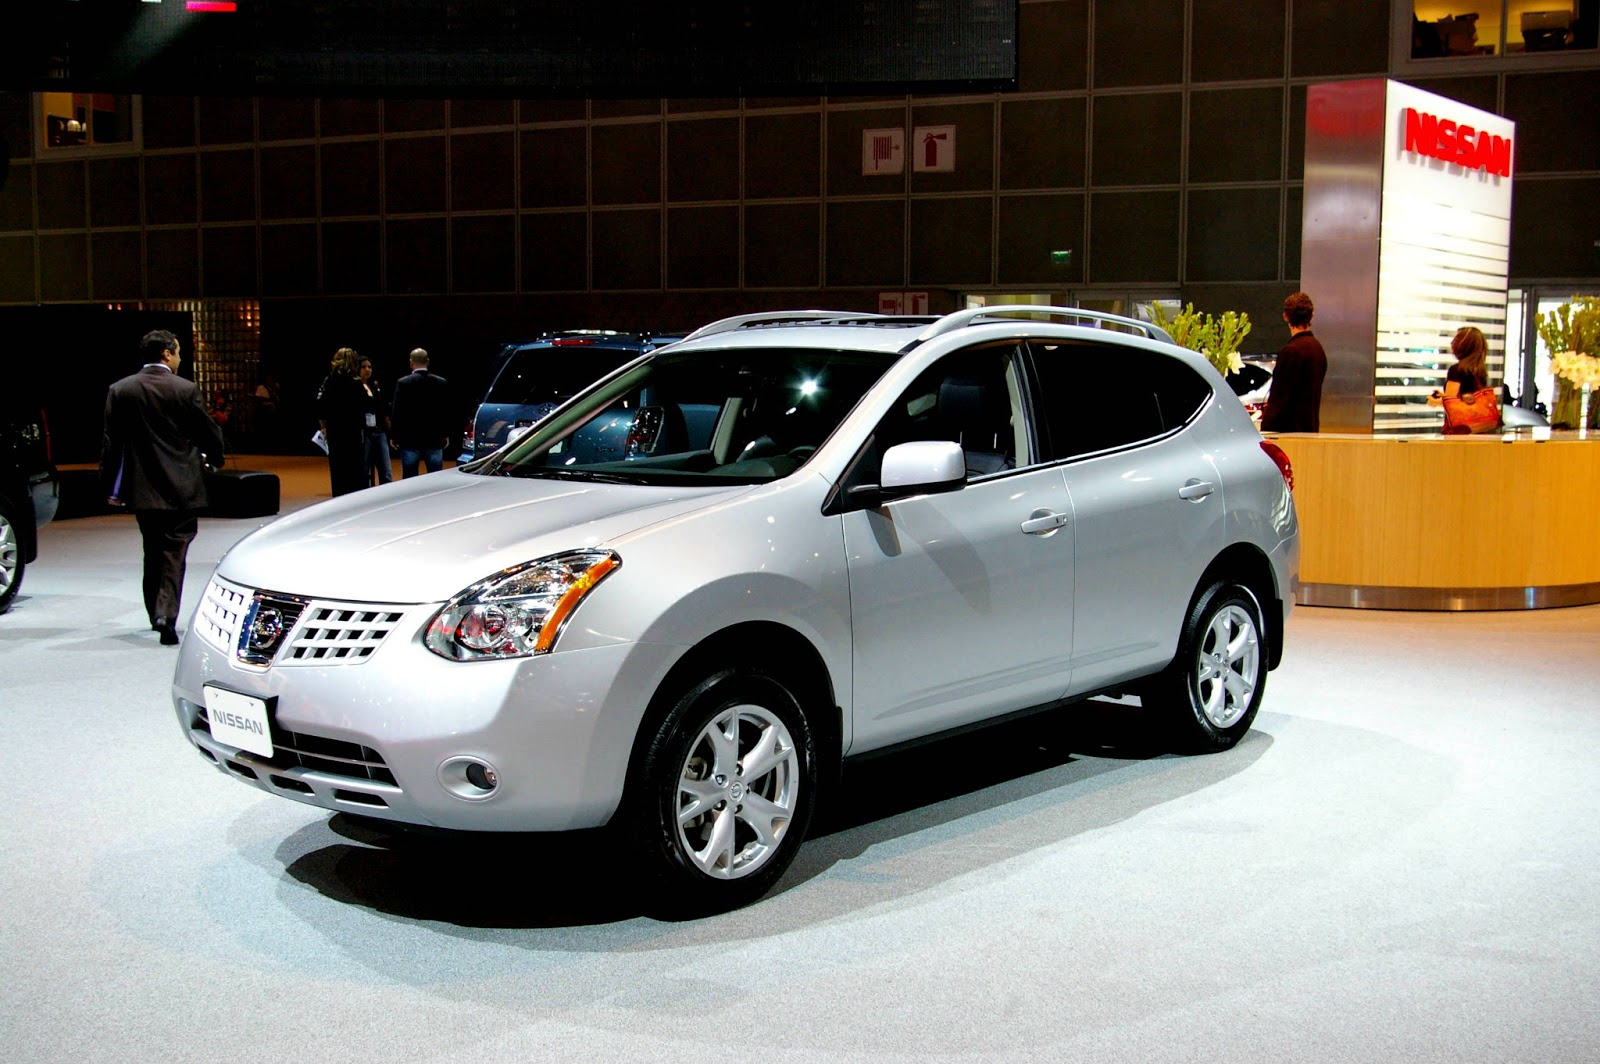 nissan rogue news cars 2013 nissan views car. Black Bedroom Furniture Sets. Home Design Ideas